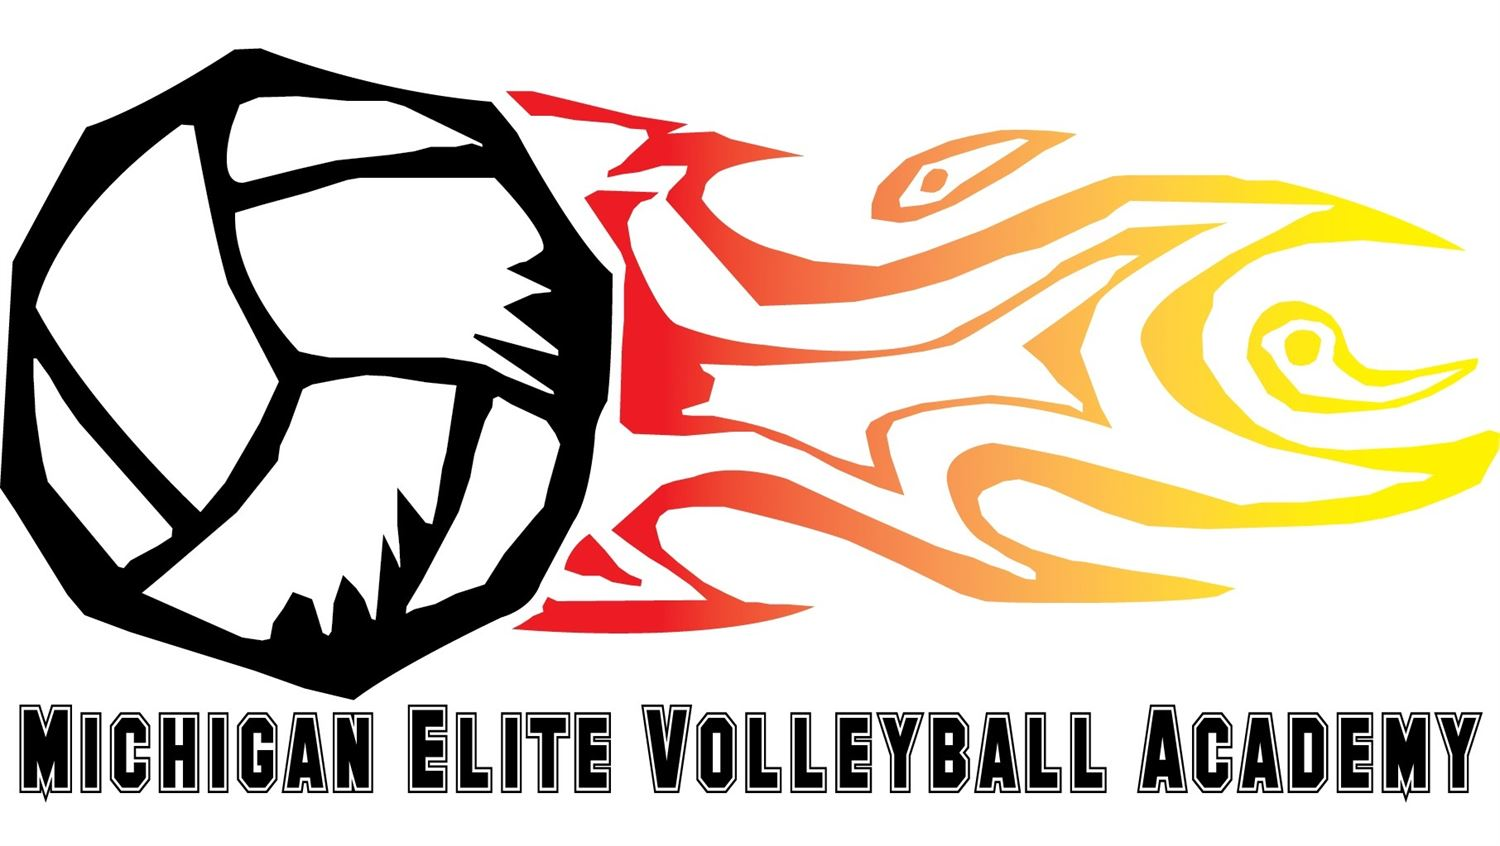 Mielite 14 Elite East Michigan Elite Volleyball Academy Warren Michigan Volleyball Hudl